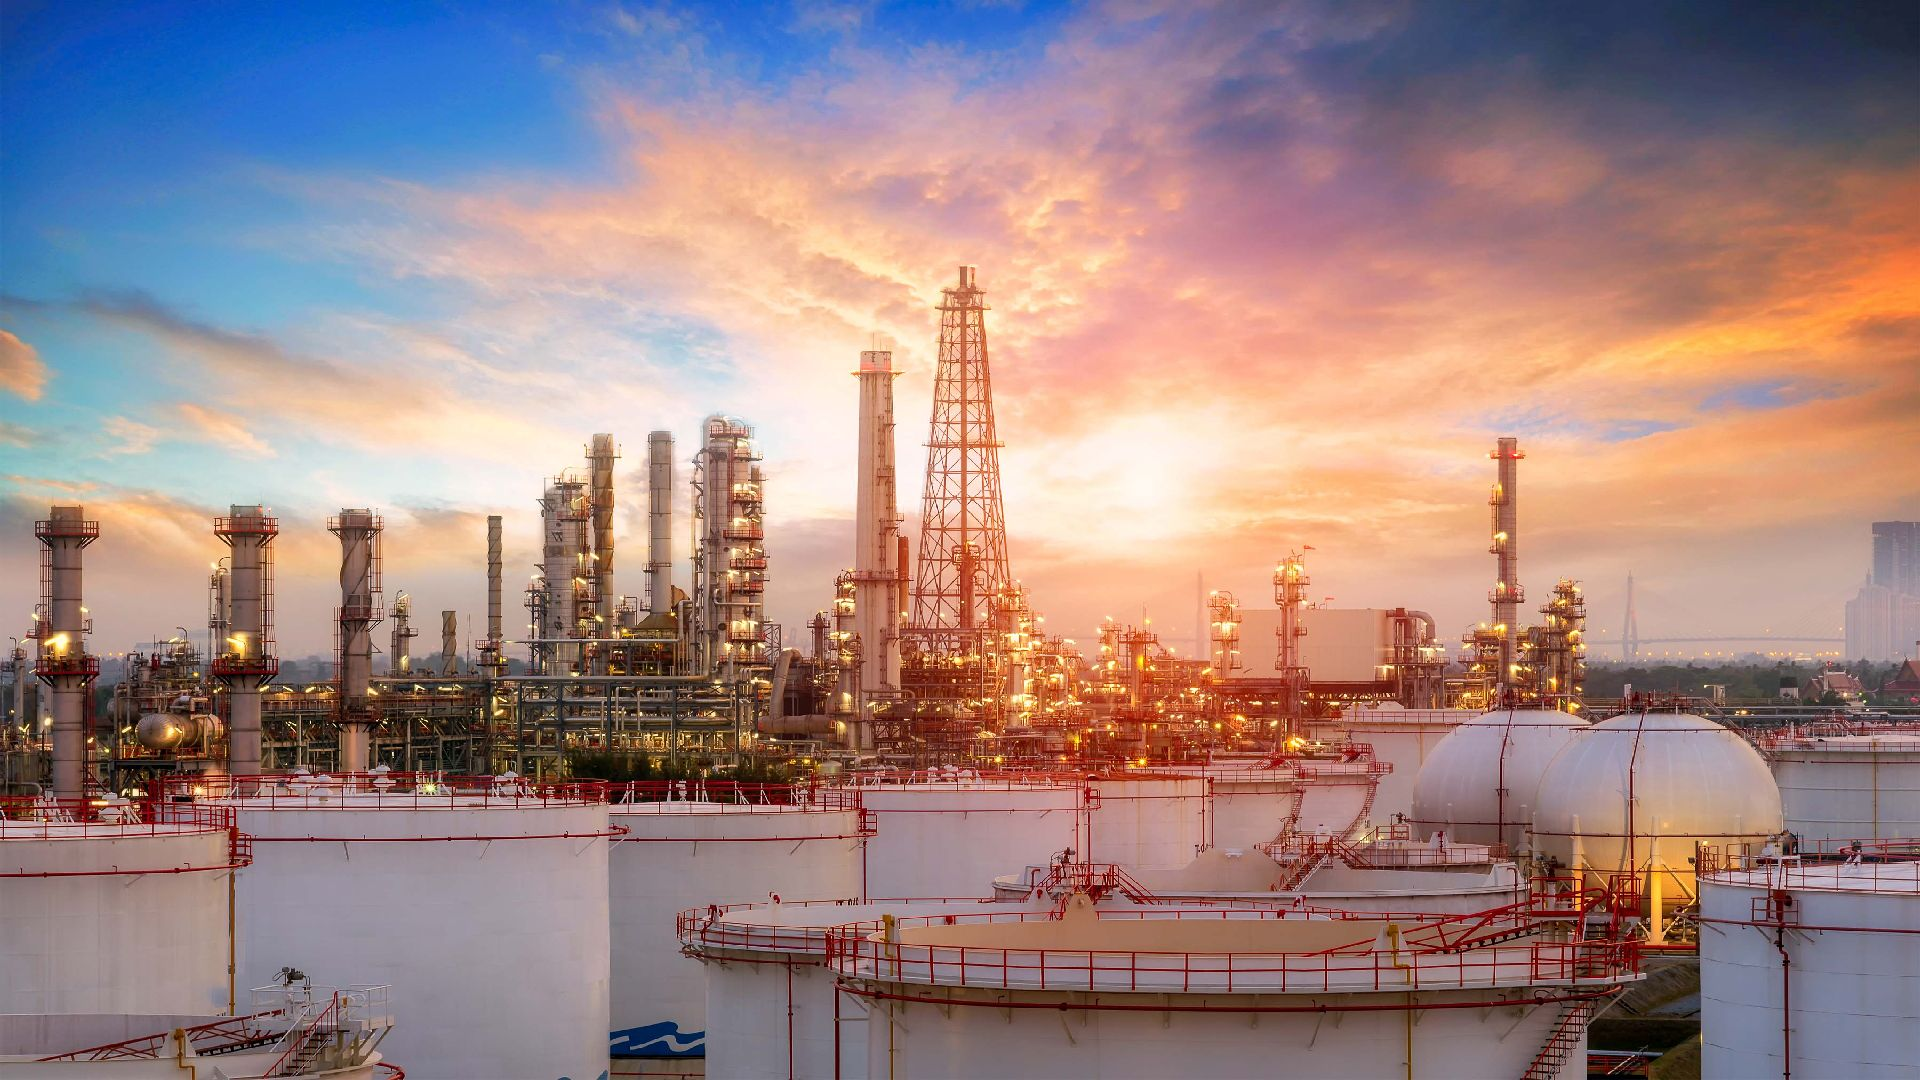 Global Petrochemical Industry Analysis Market Research